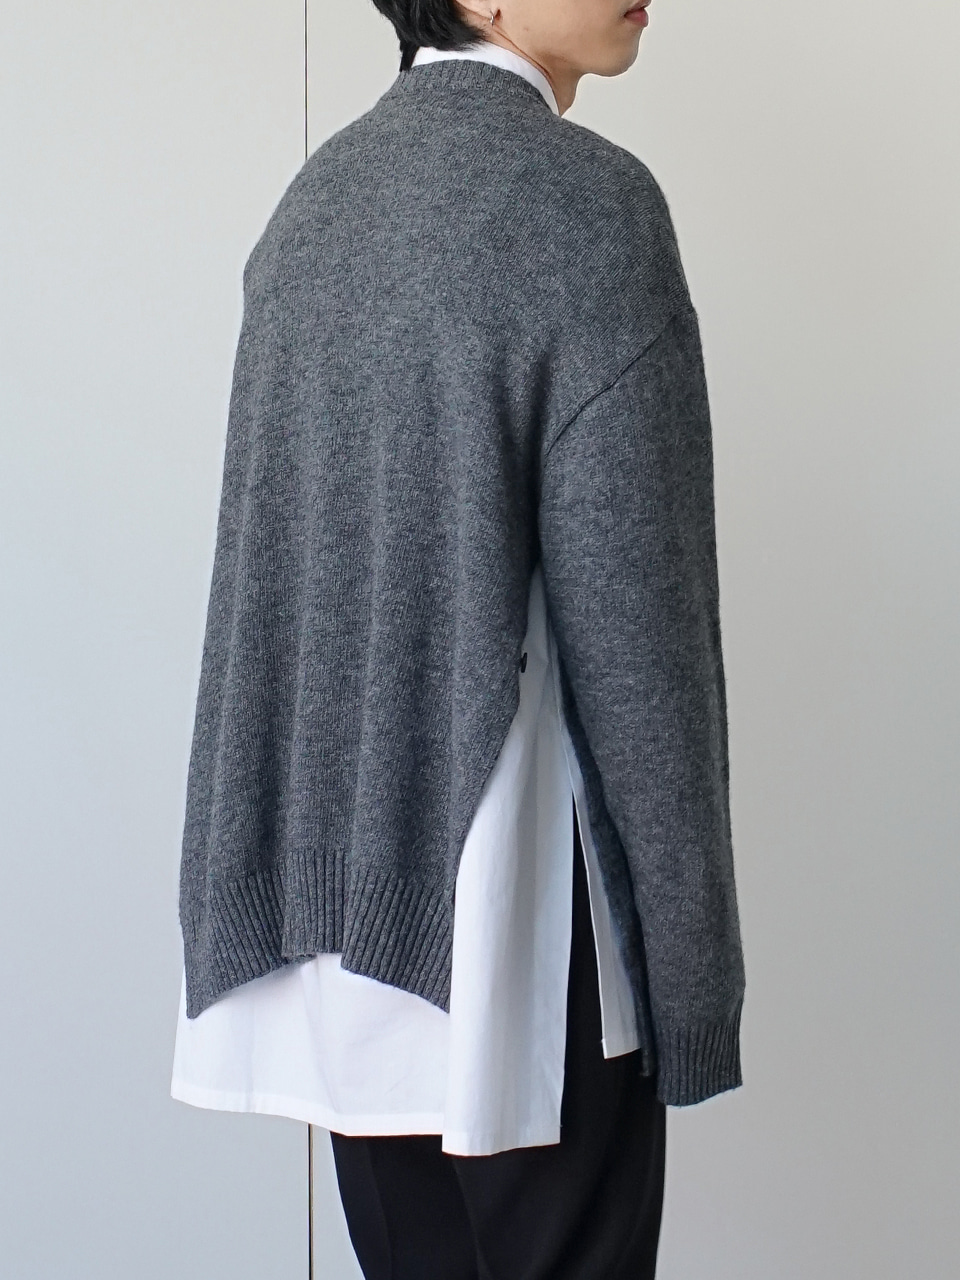 Lukas Side Vent Knit (3color)